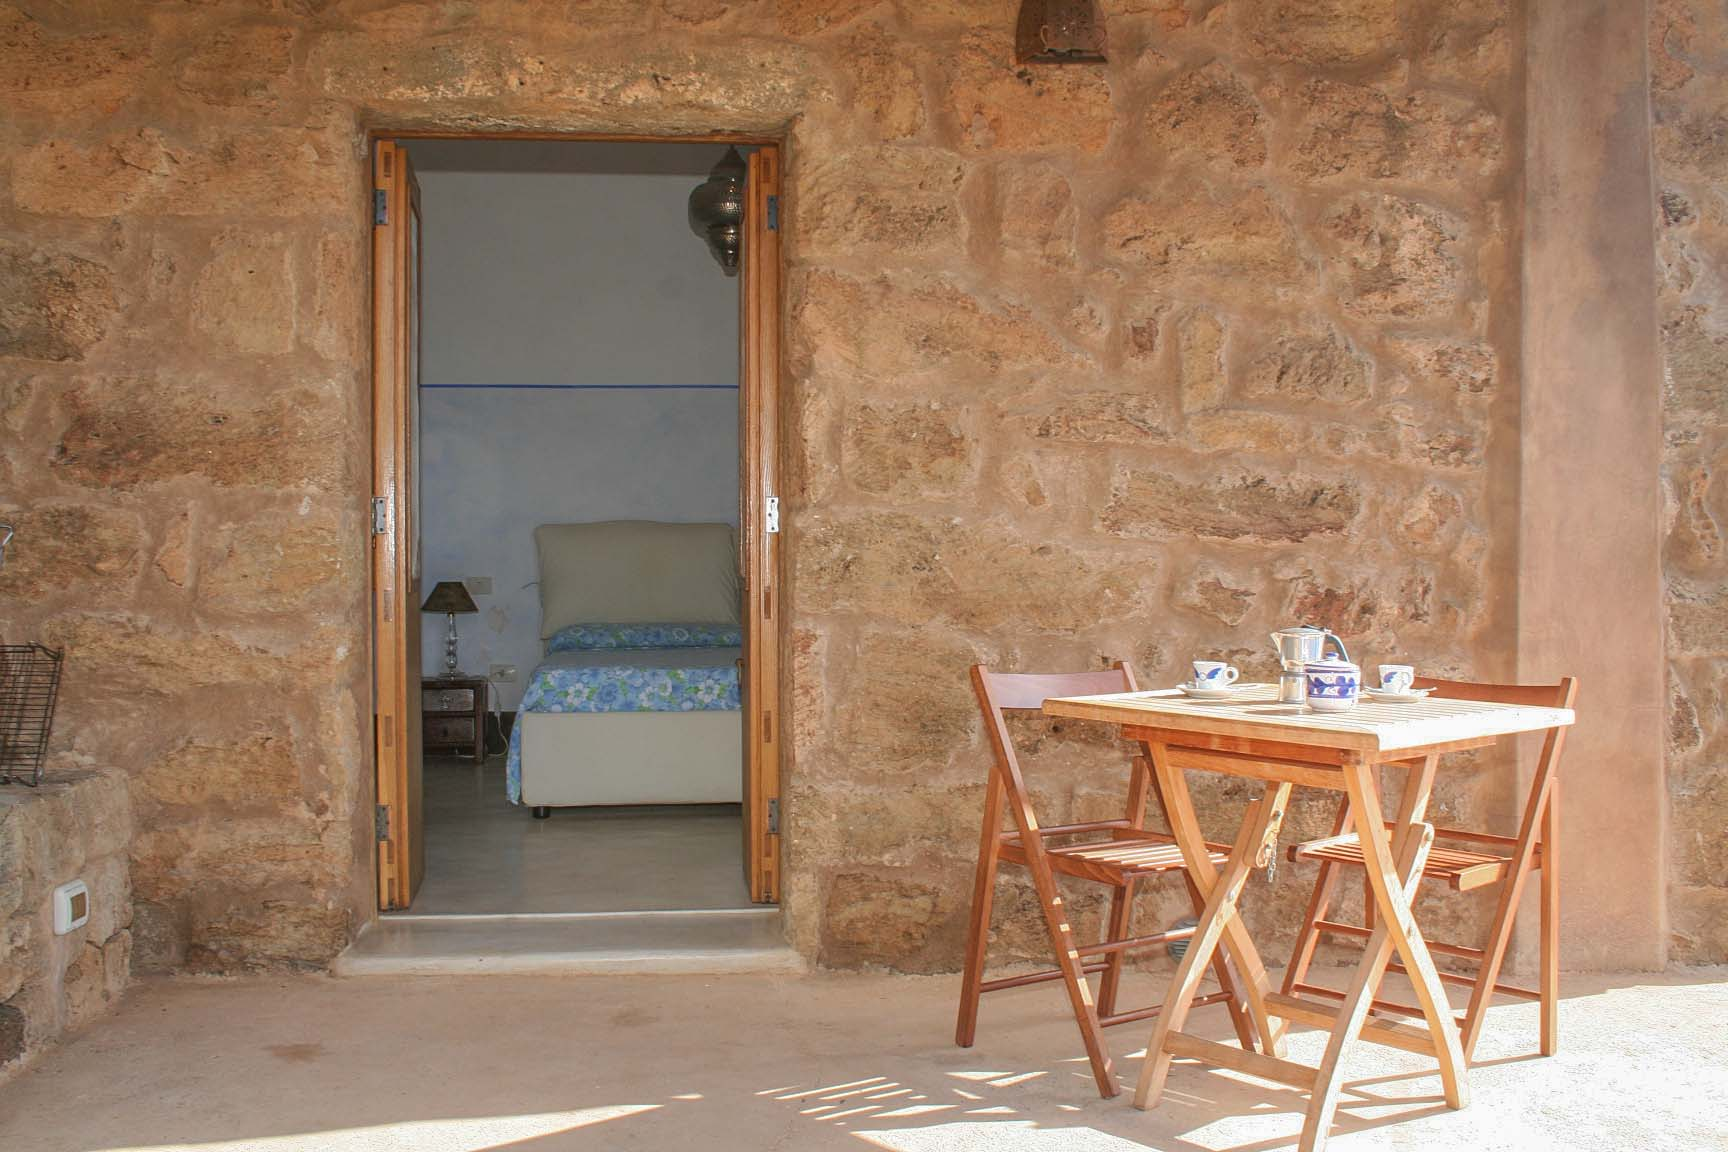 mare - the bedroom as seen from the terrace